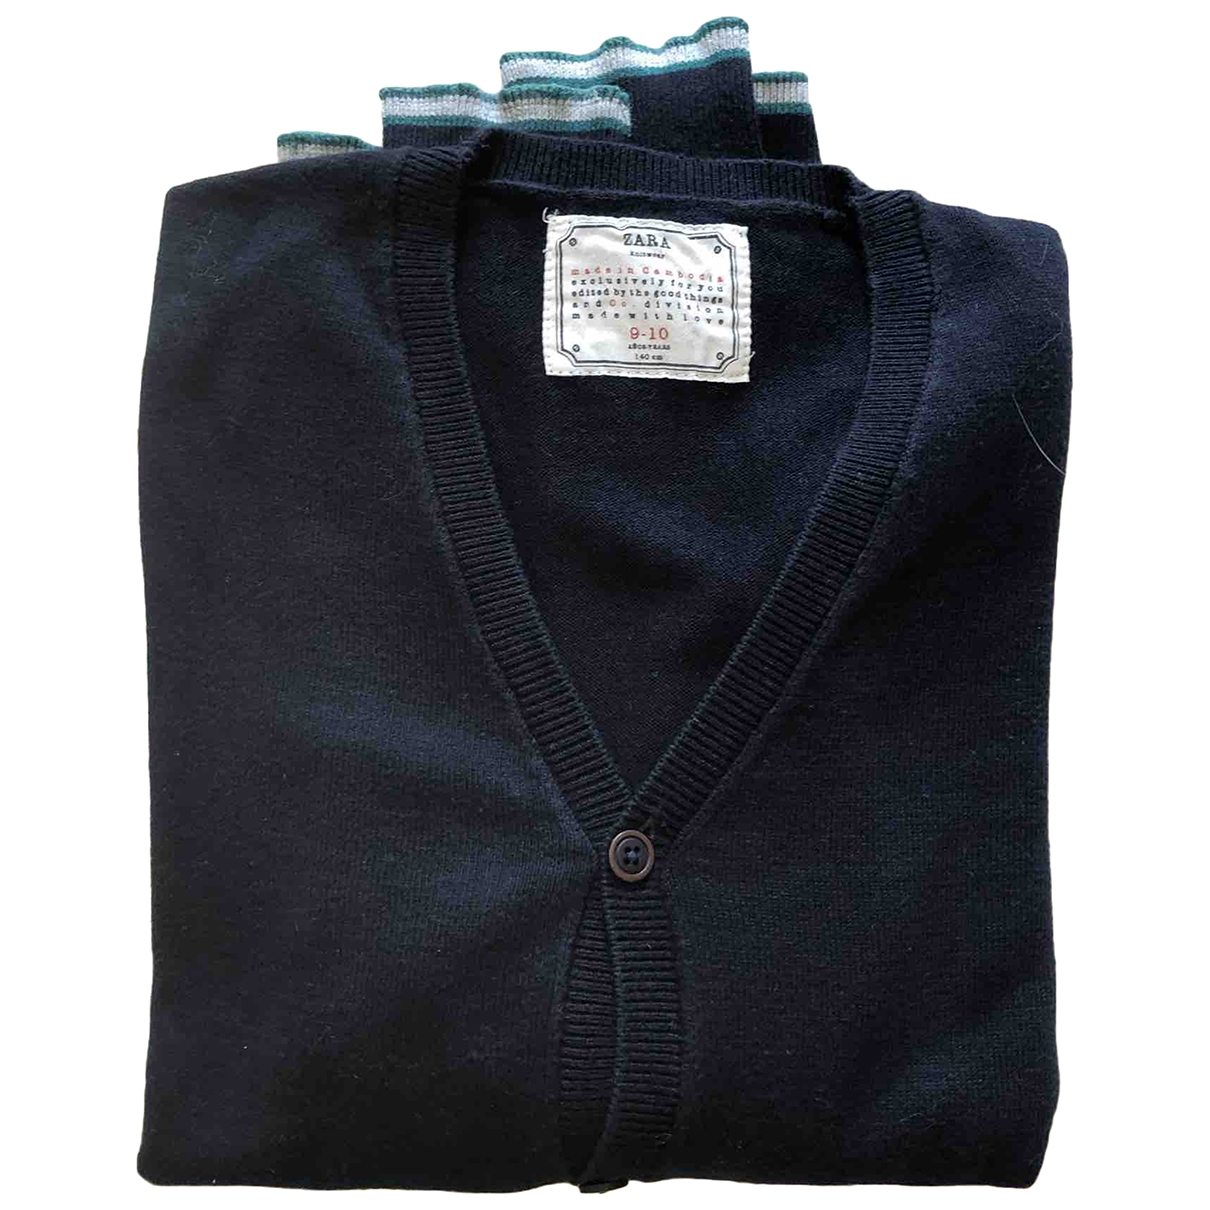 Zara \N Navy Cotton Knitwear for Kids 10 years - until 56 inches UK